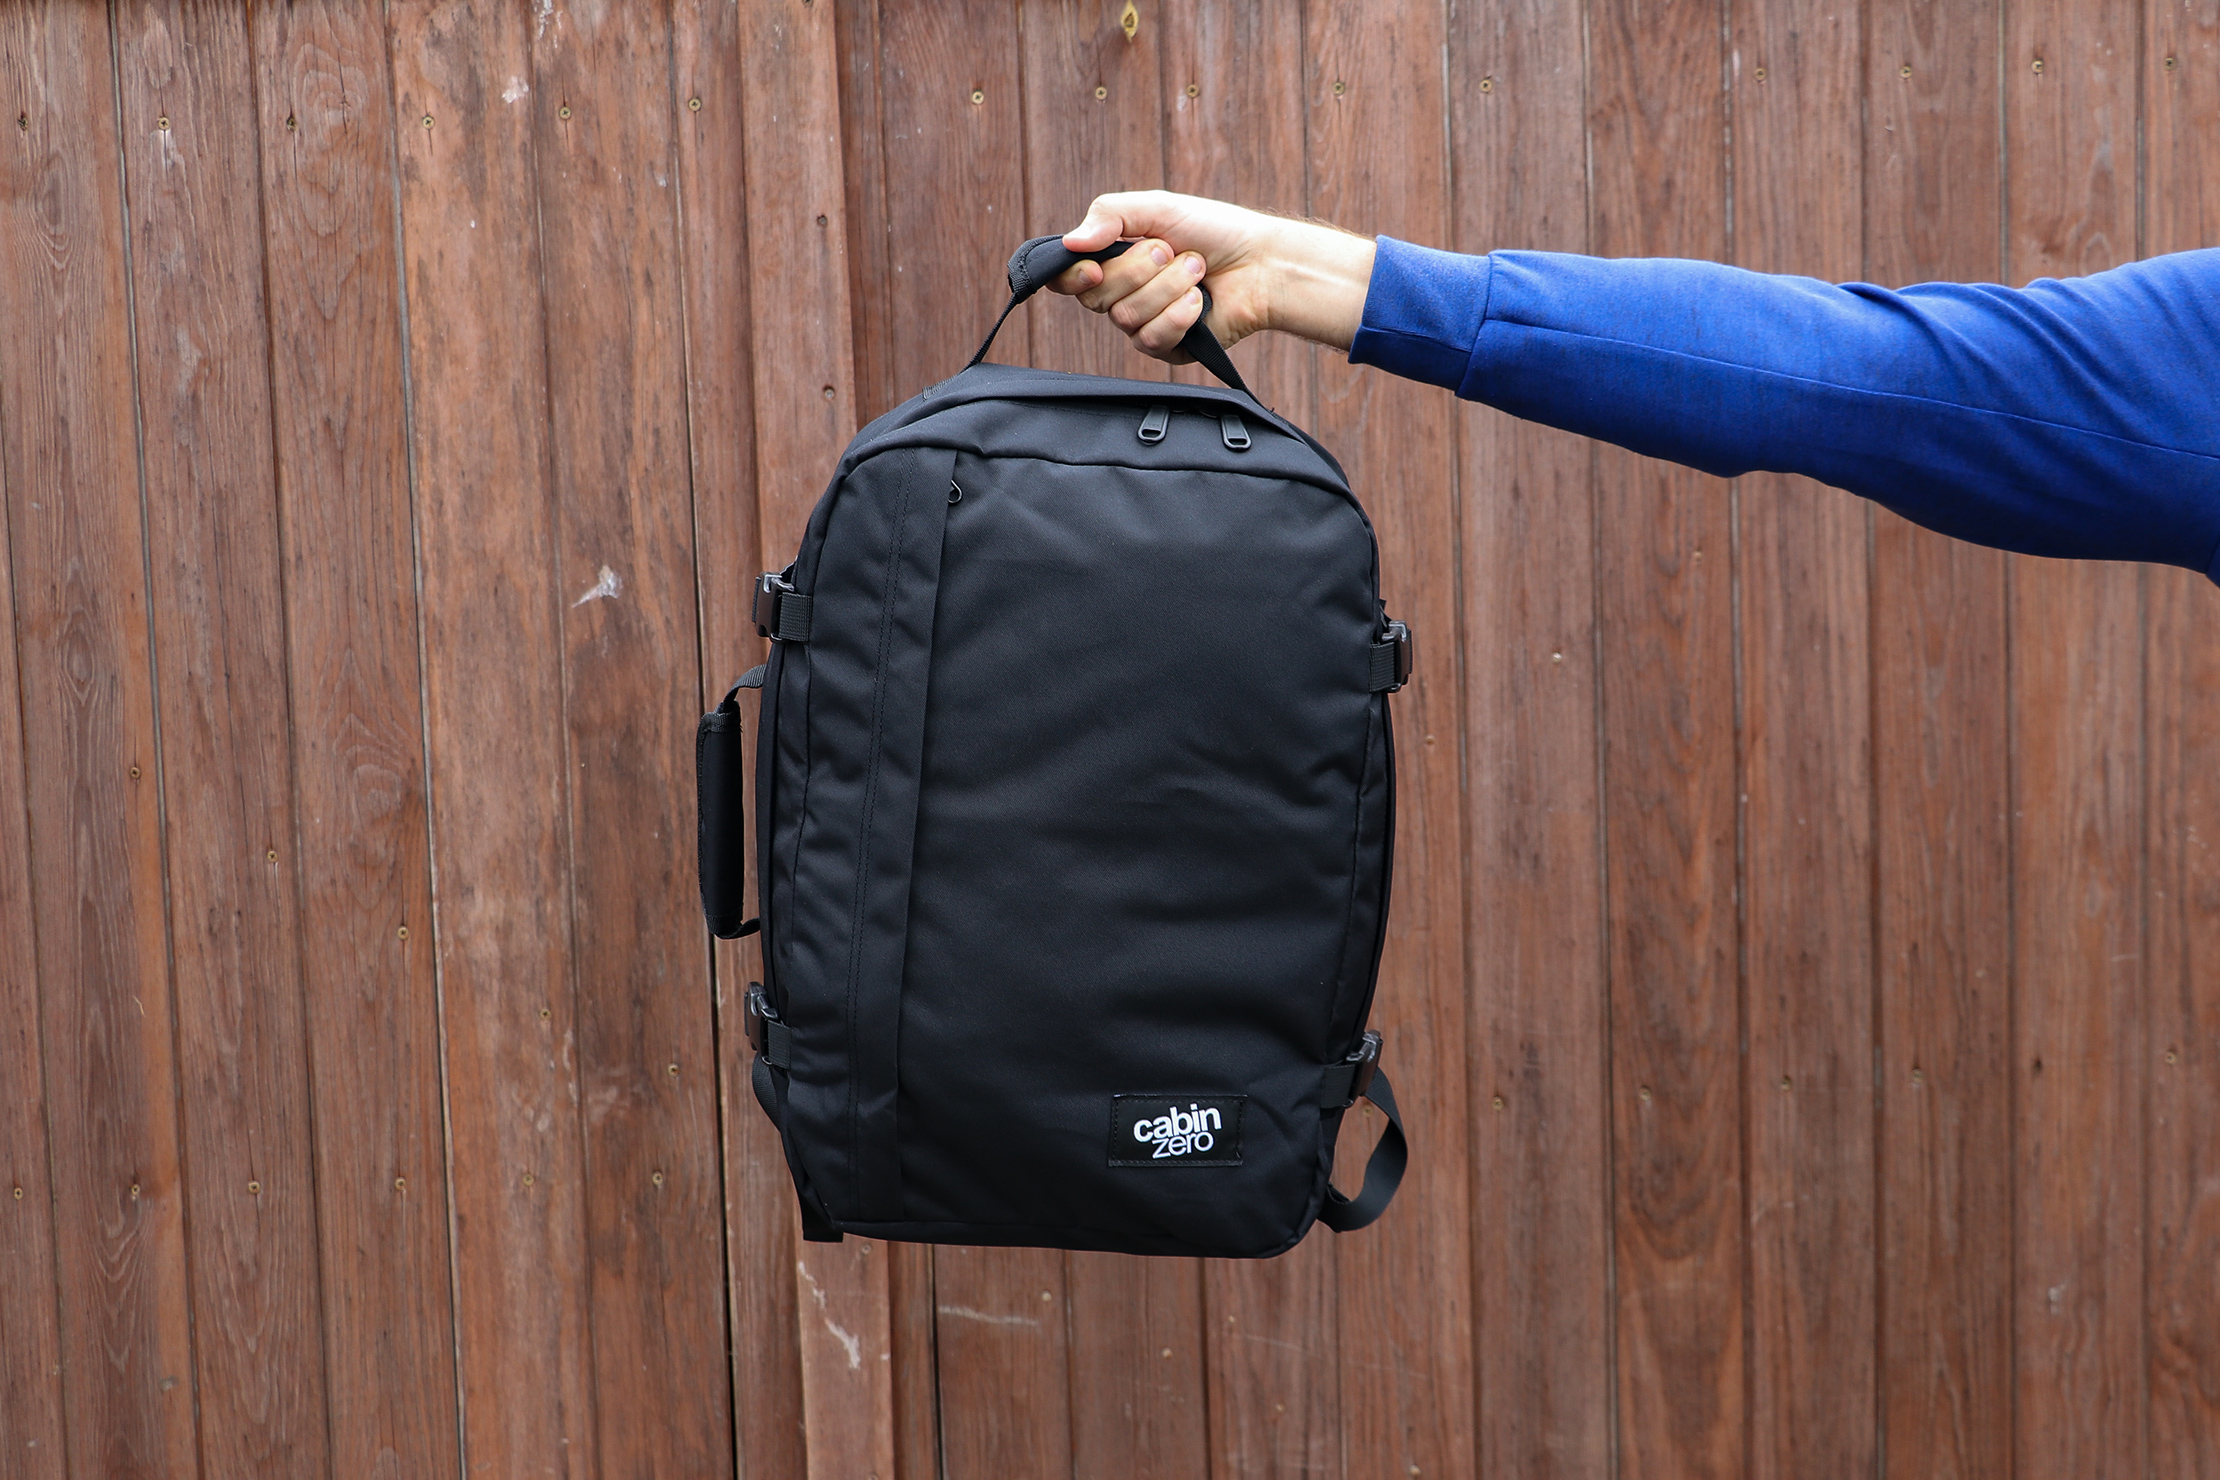 Holding The CabinZero Classic Travel Backpack With The Top Handle